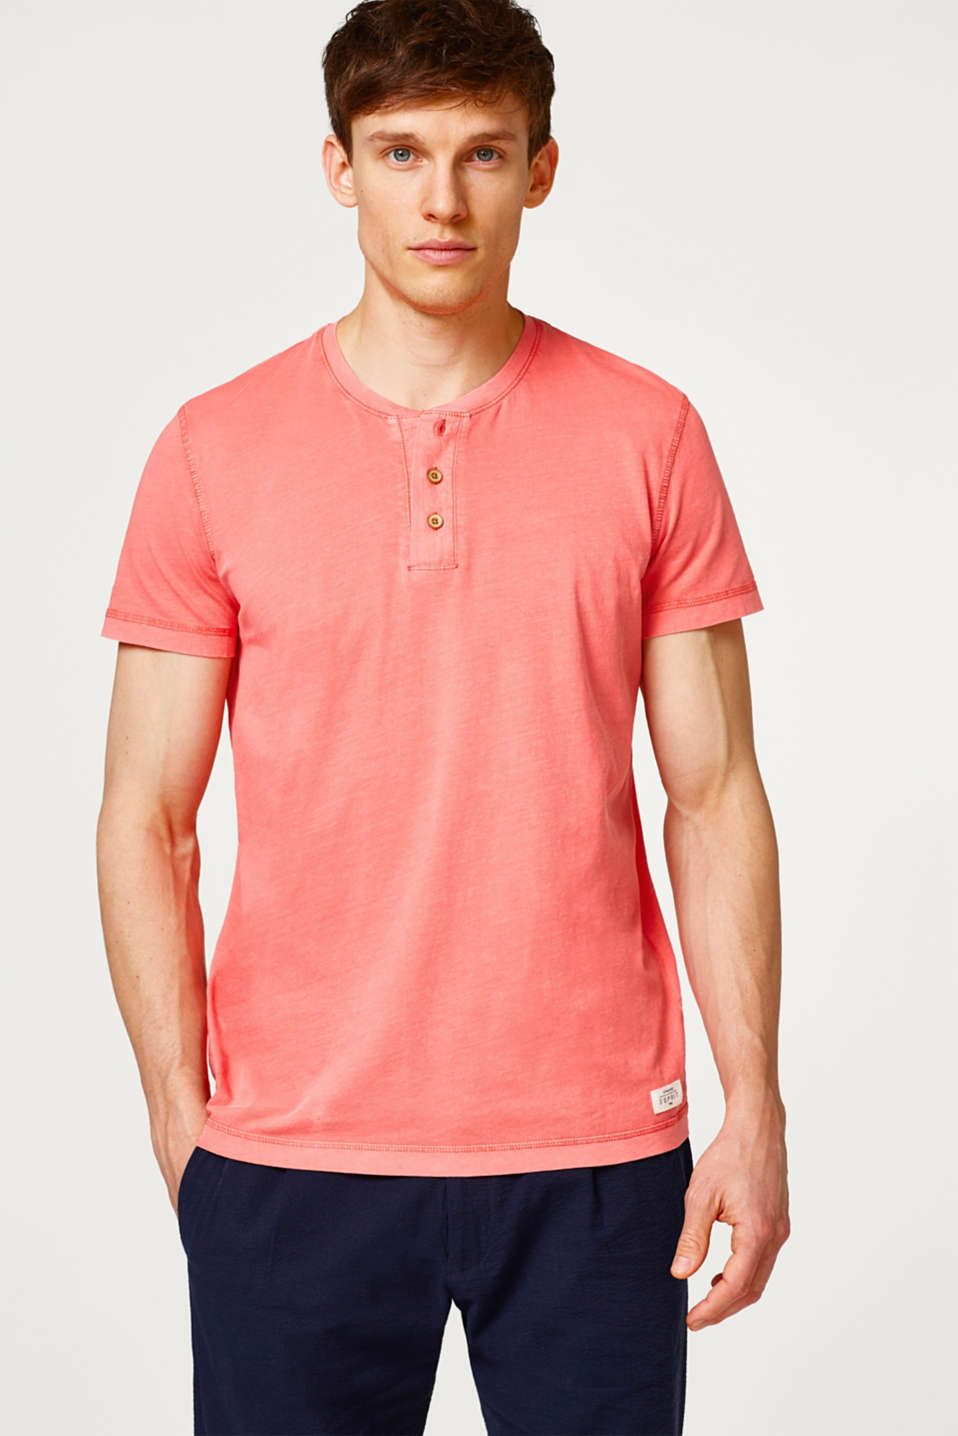 Esprit - Cotton jersey Henley T-shirt